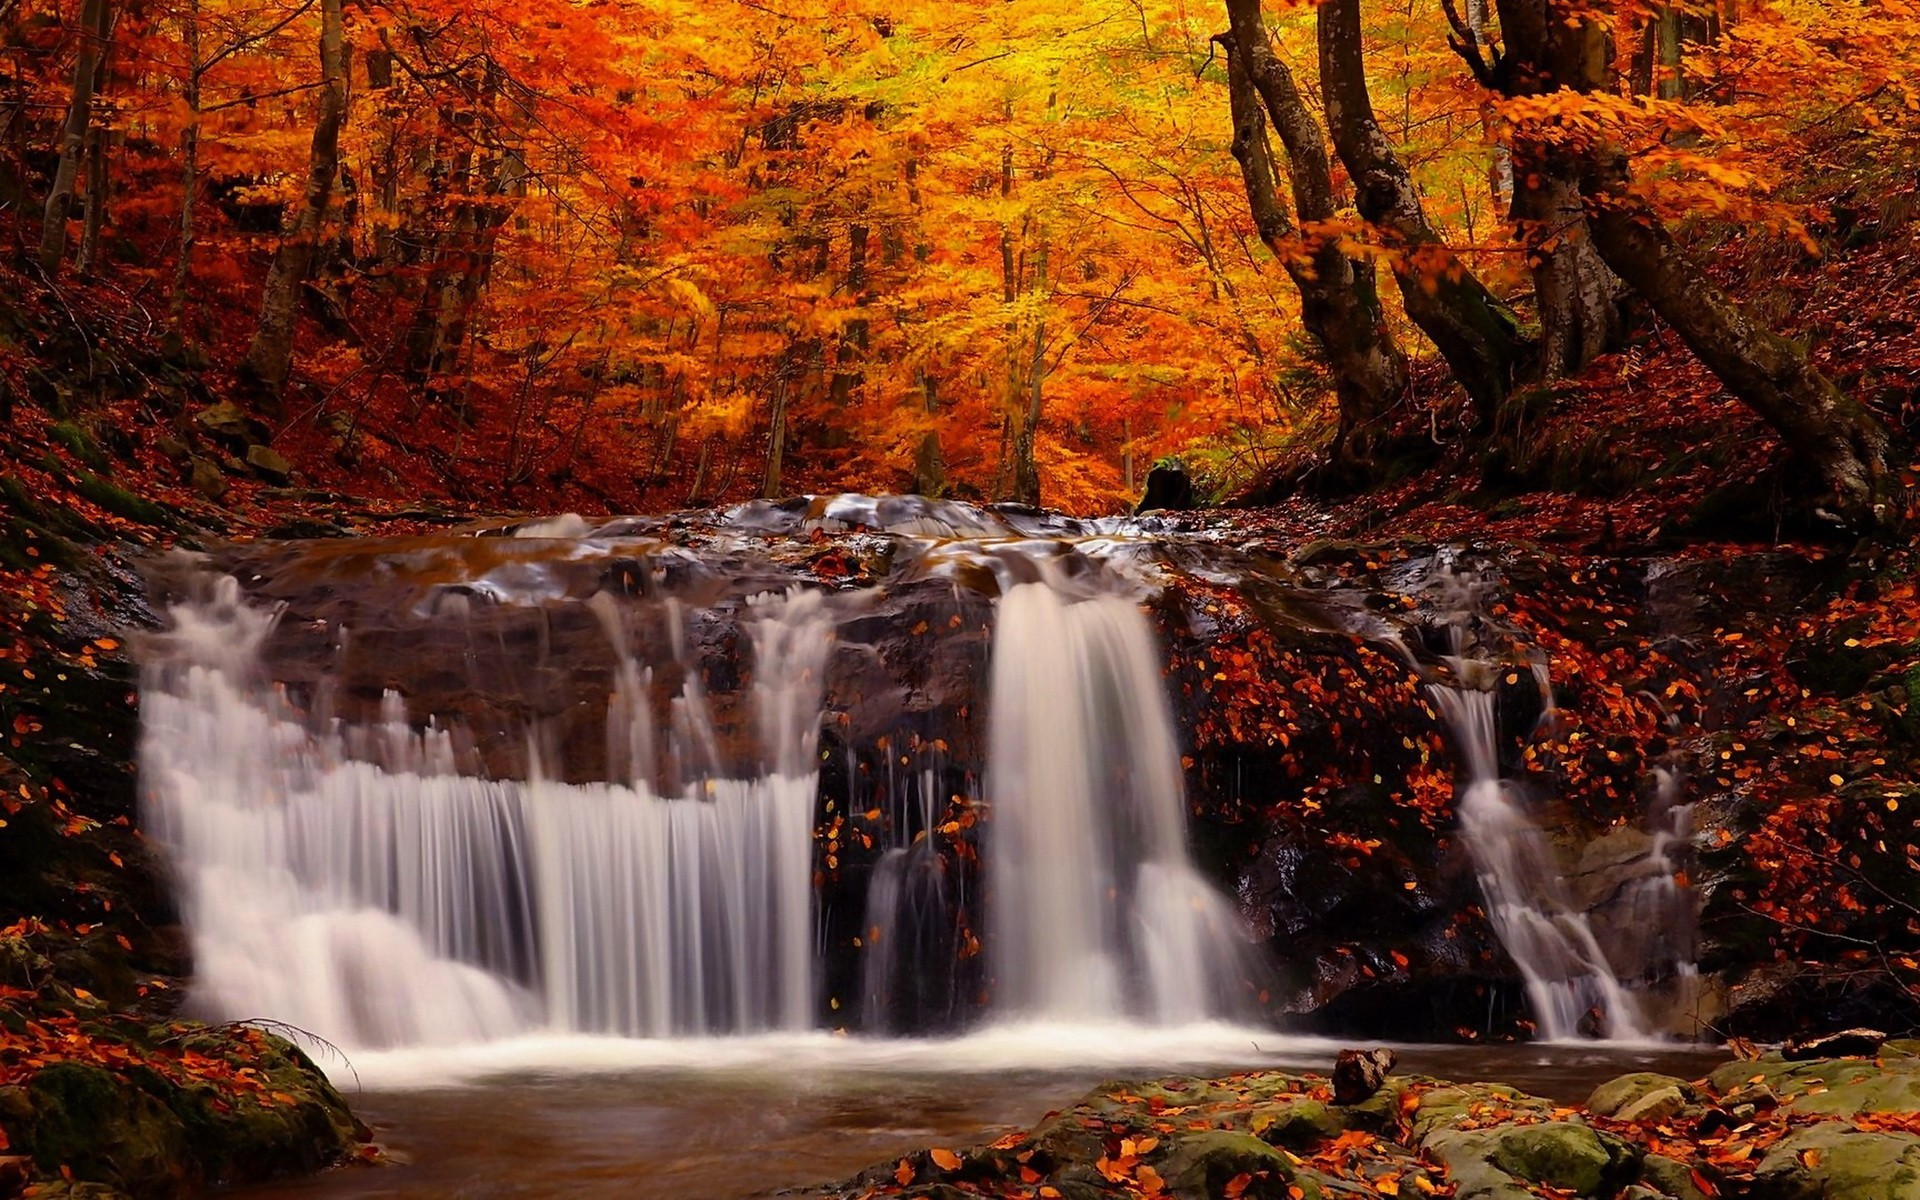 Simple Wallpapers Colors Fall Waterfall On The Rocks In The Autumn Forest Wallpapers And